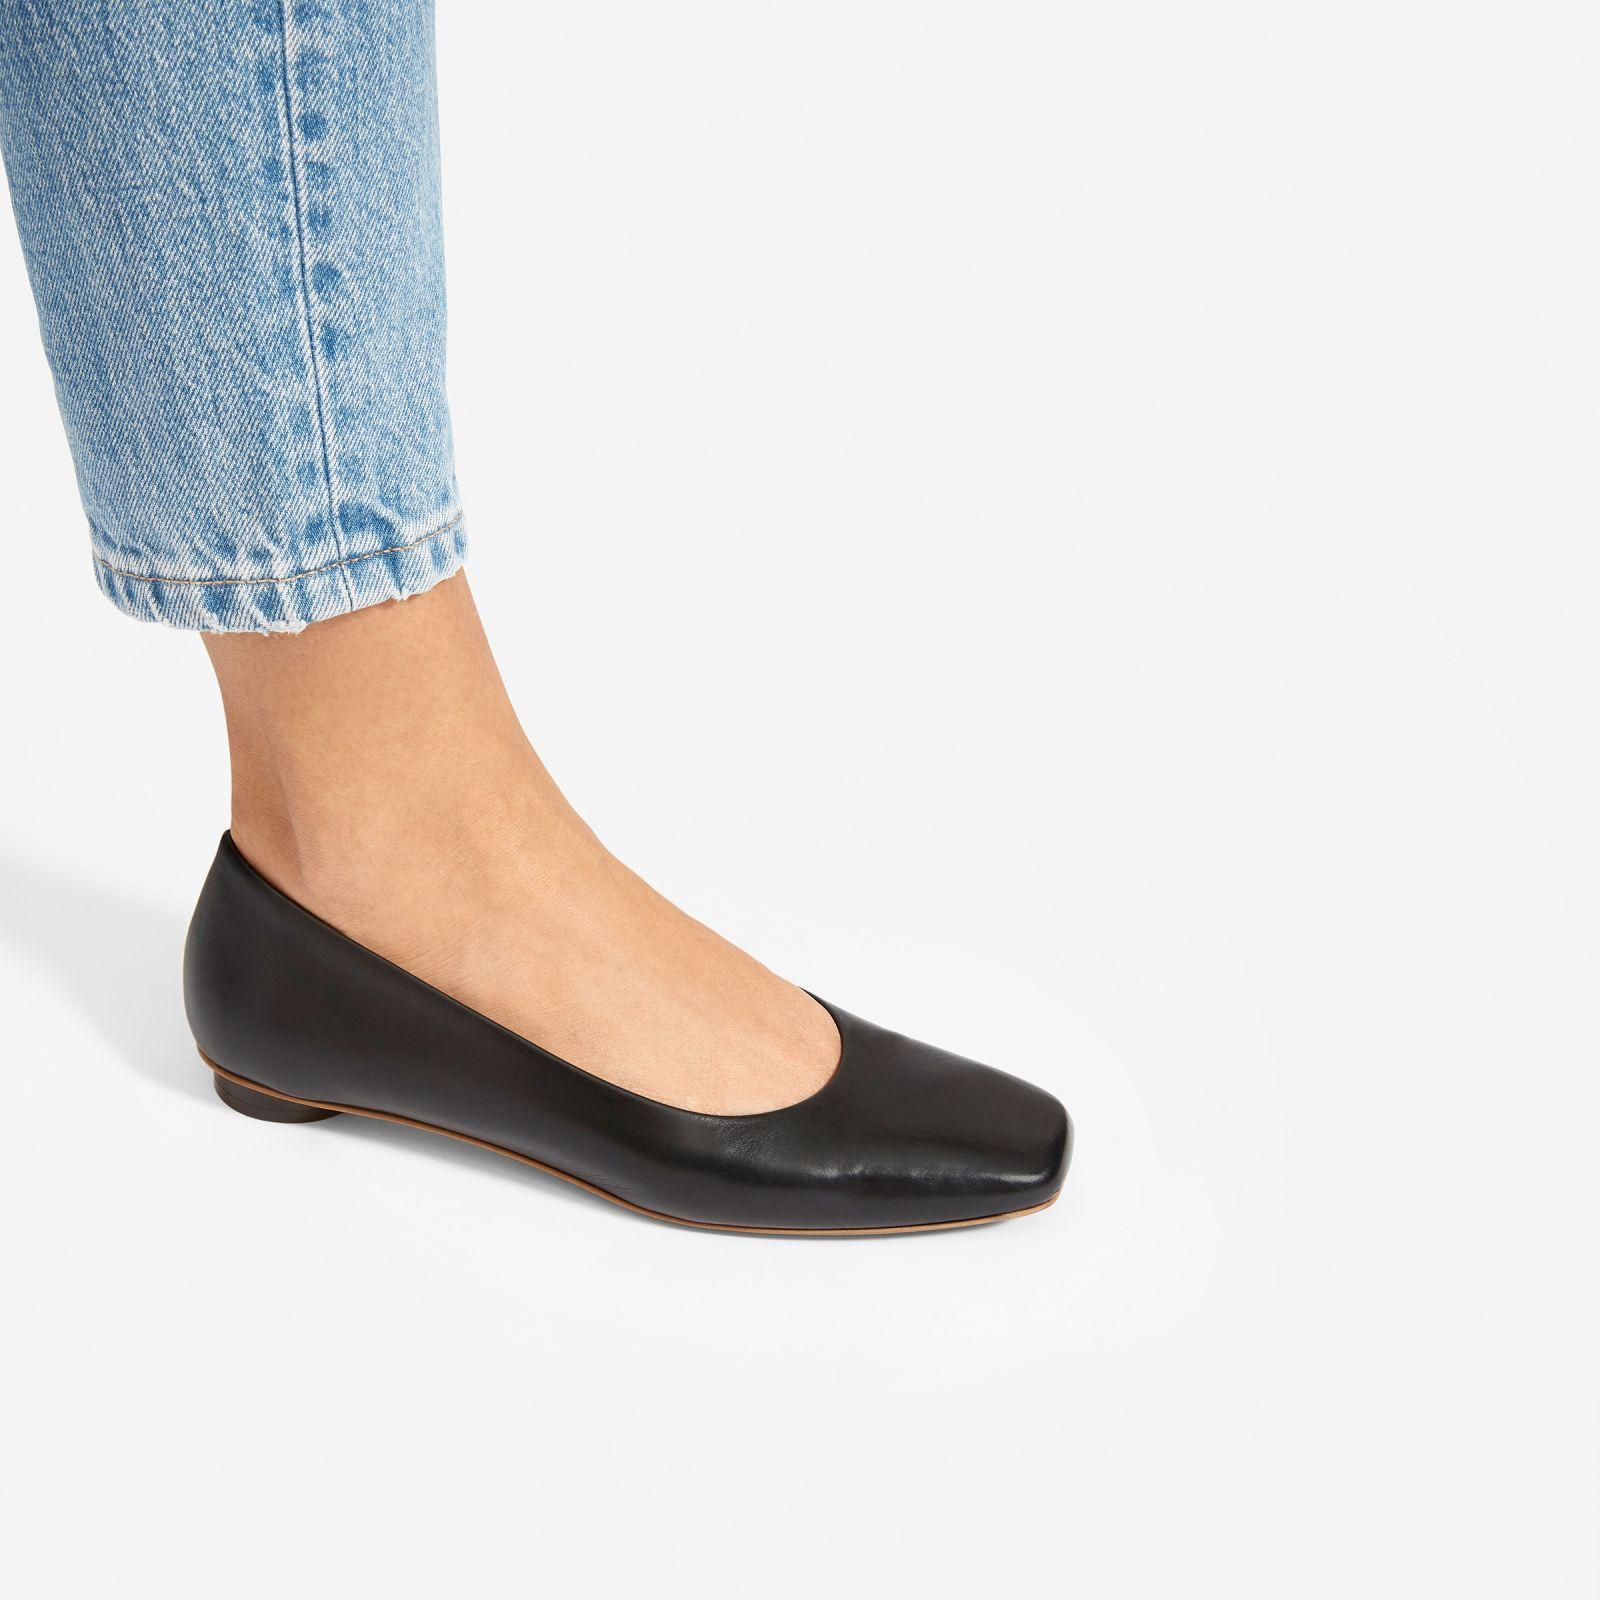 8090a89b900 Everlane - Black The Square Toe Flat - Lyst. View fullscreen